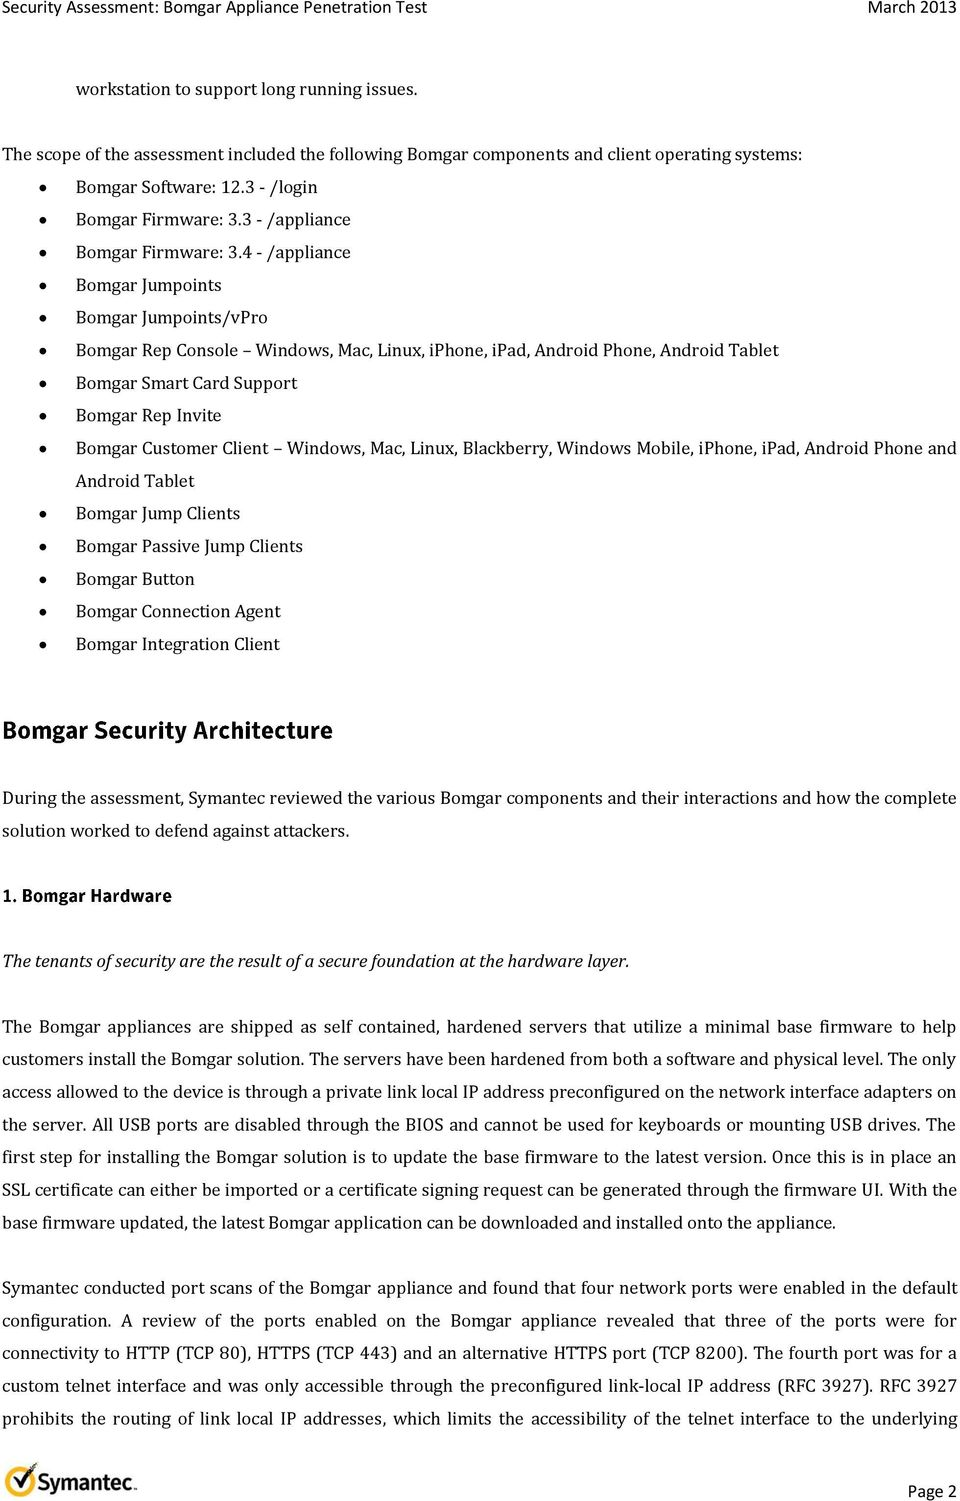 4 - /appliance Bomgar Jumpoints Bomgar Jumpoints/vPro Bomgar Rep Console Windows, Mac, Linux, iphone, ipad, Android Phone, Android Tablet Bomgar Smart Card Support Bomgar Rep Invite Bomgar Customer